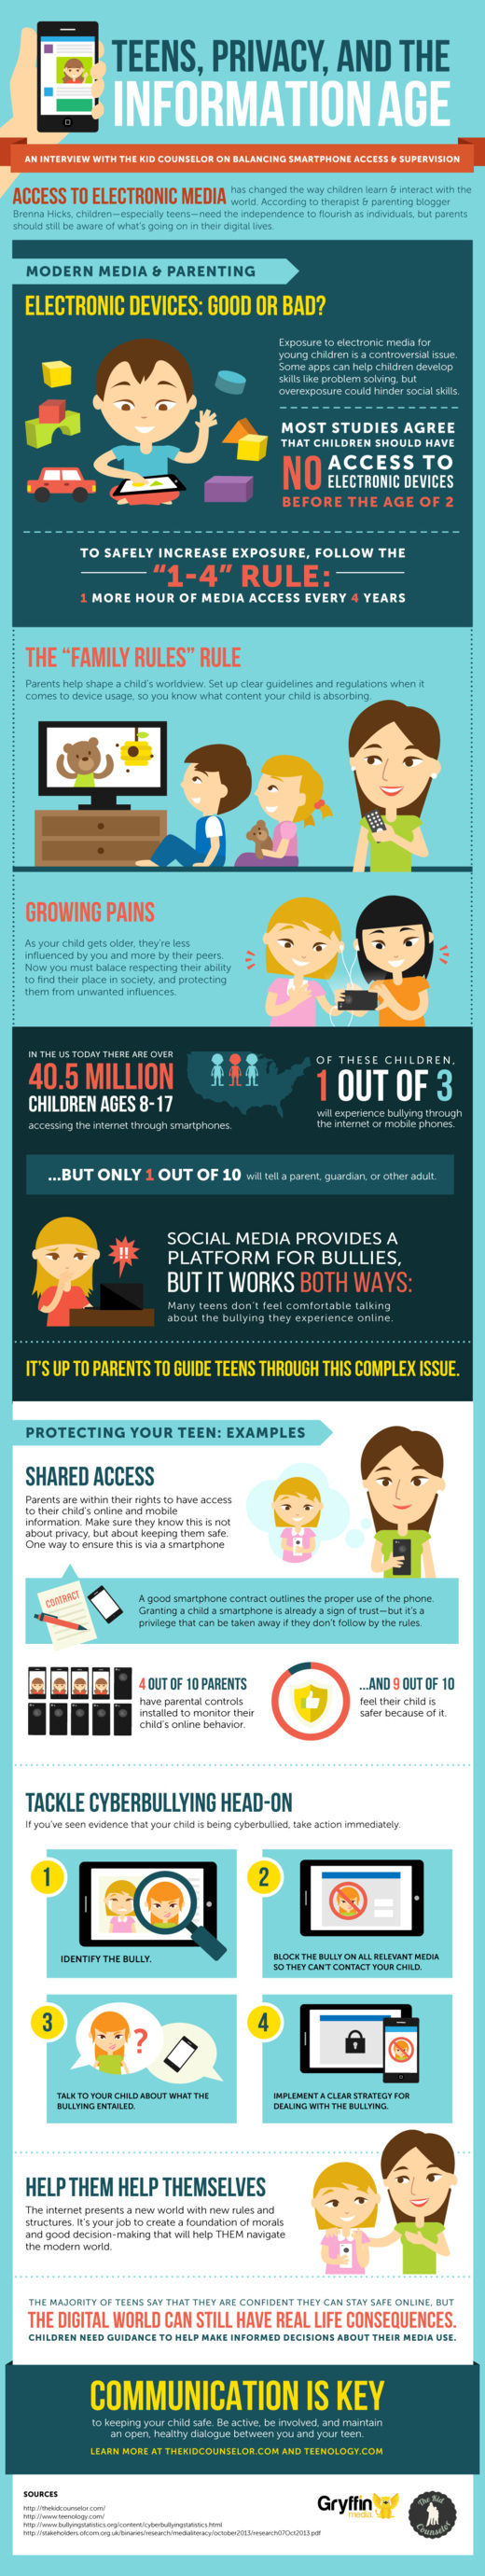 Teen Privacy Online has some important considerations. Should screen time be independent for teens or with some supervision?